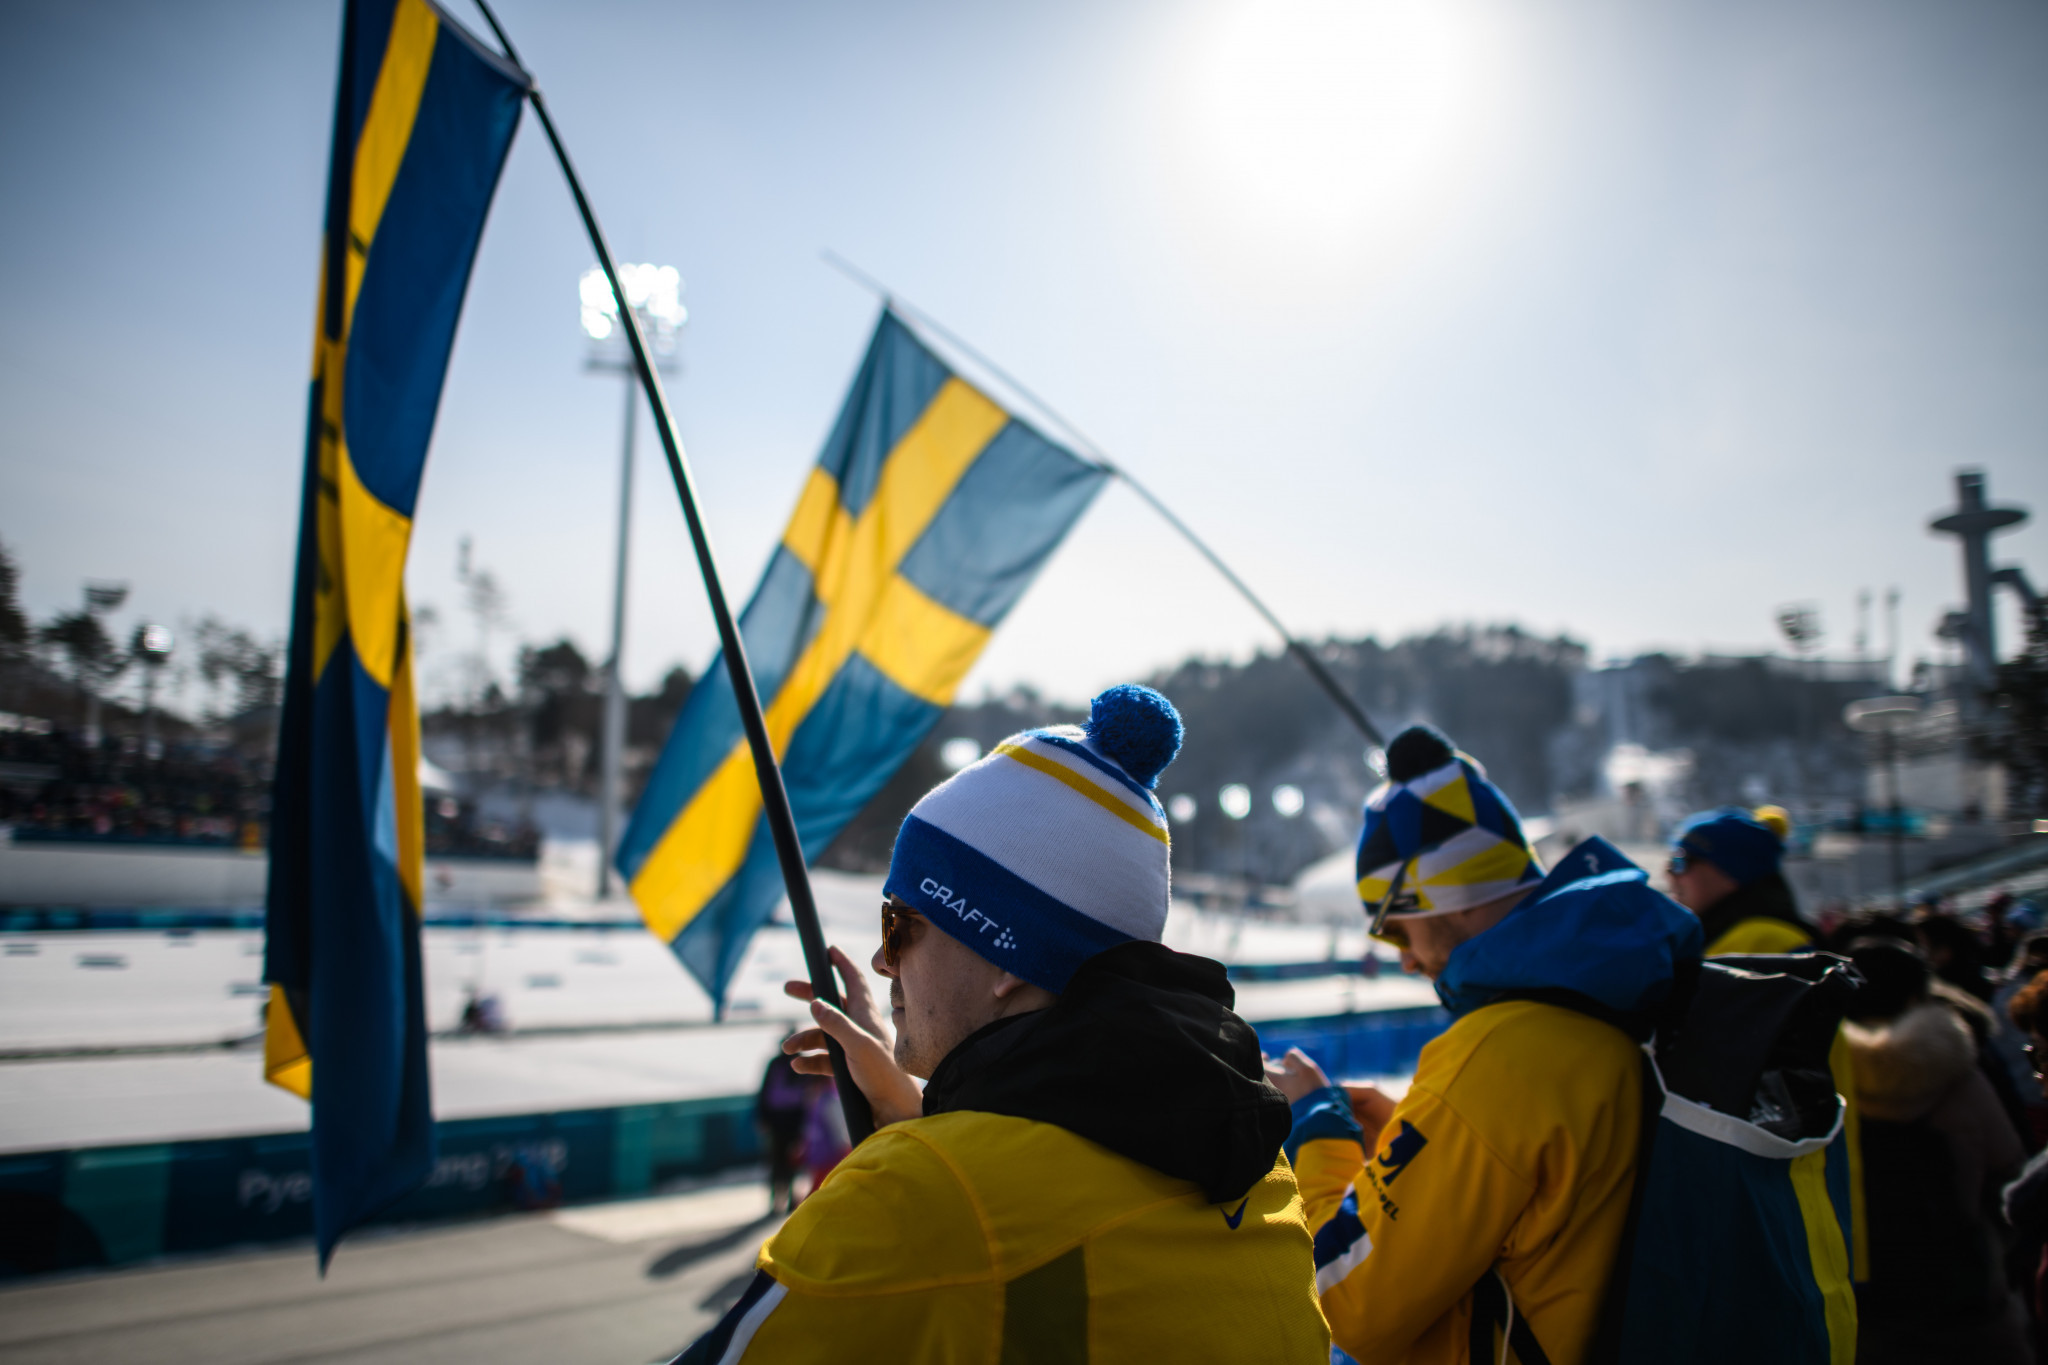 Sweden matched its Winter Olympic record of seven gold medals at Pyeongchang 2018 ©Getty Images